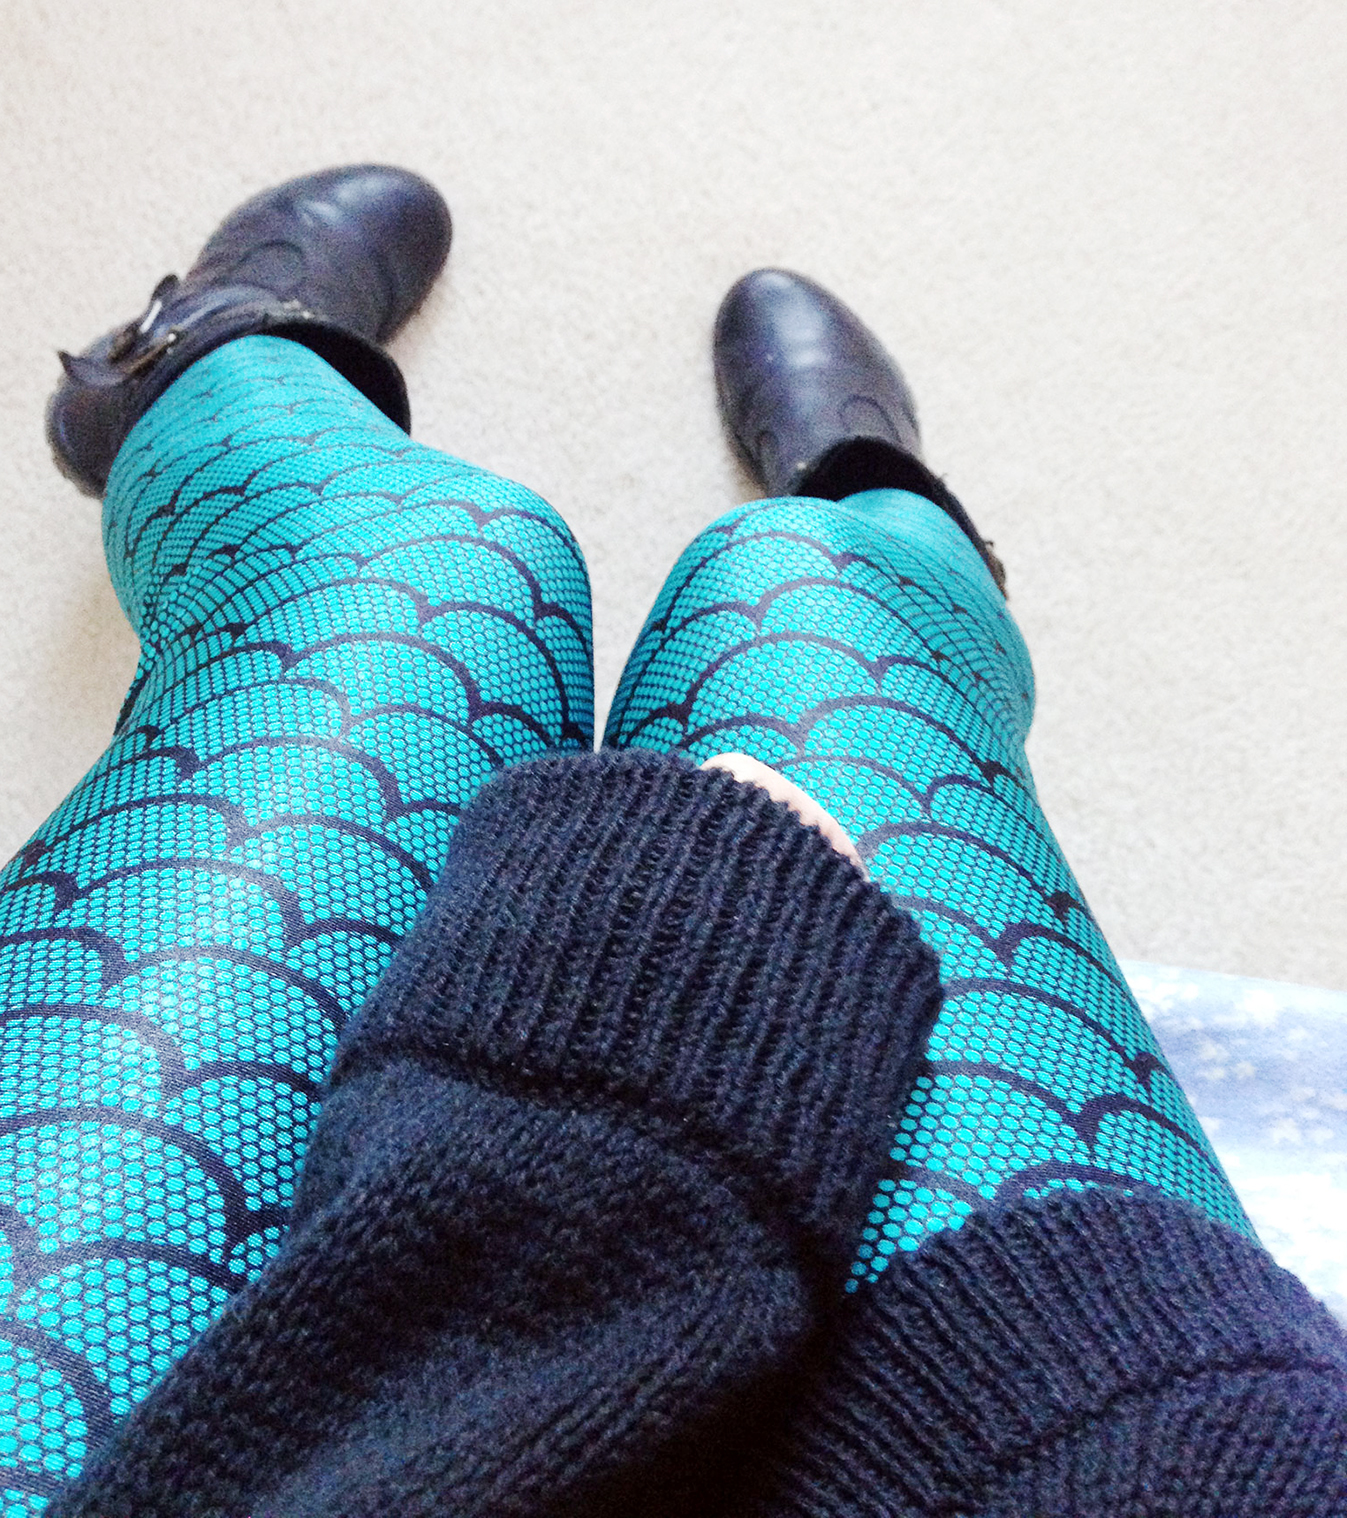 Close up of the shiny, smooth teal-colored material of these stylish and chic Mermaid leggings from Krazycloset Clothing!